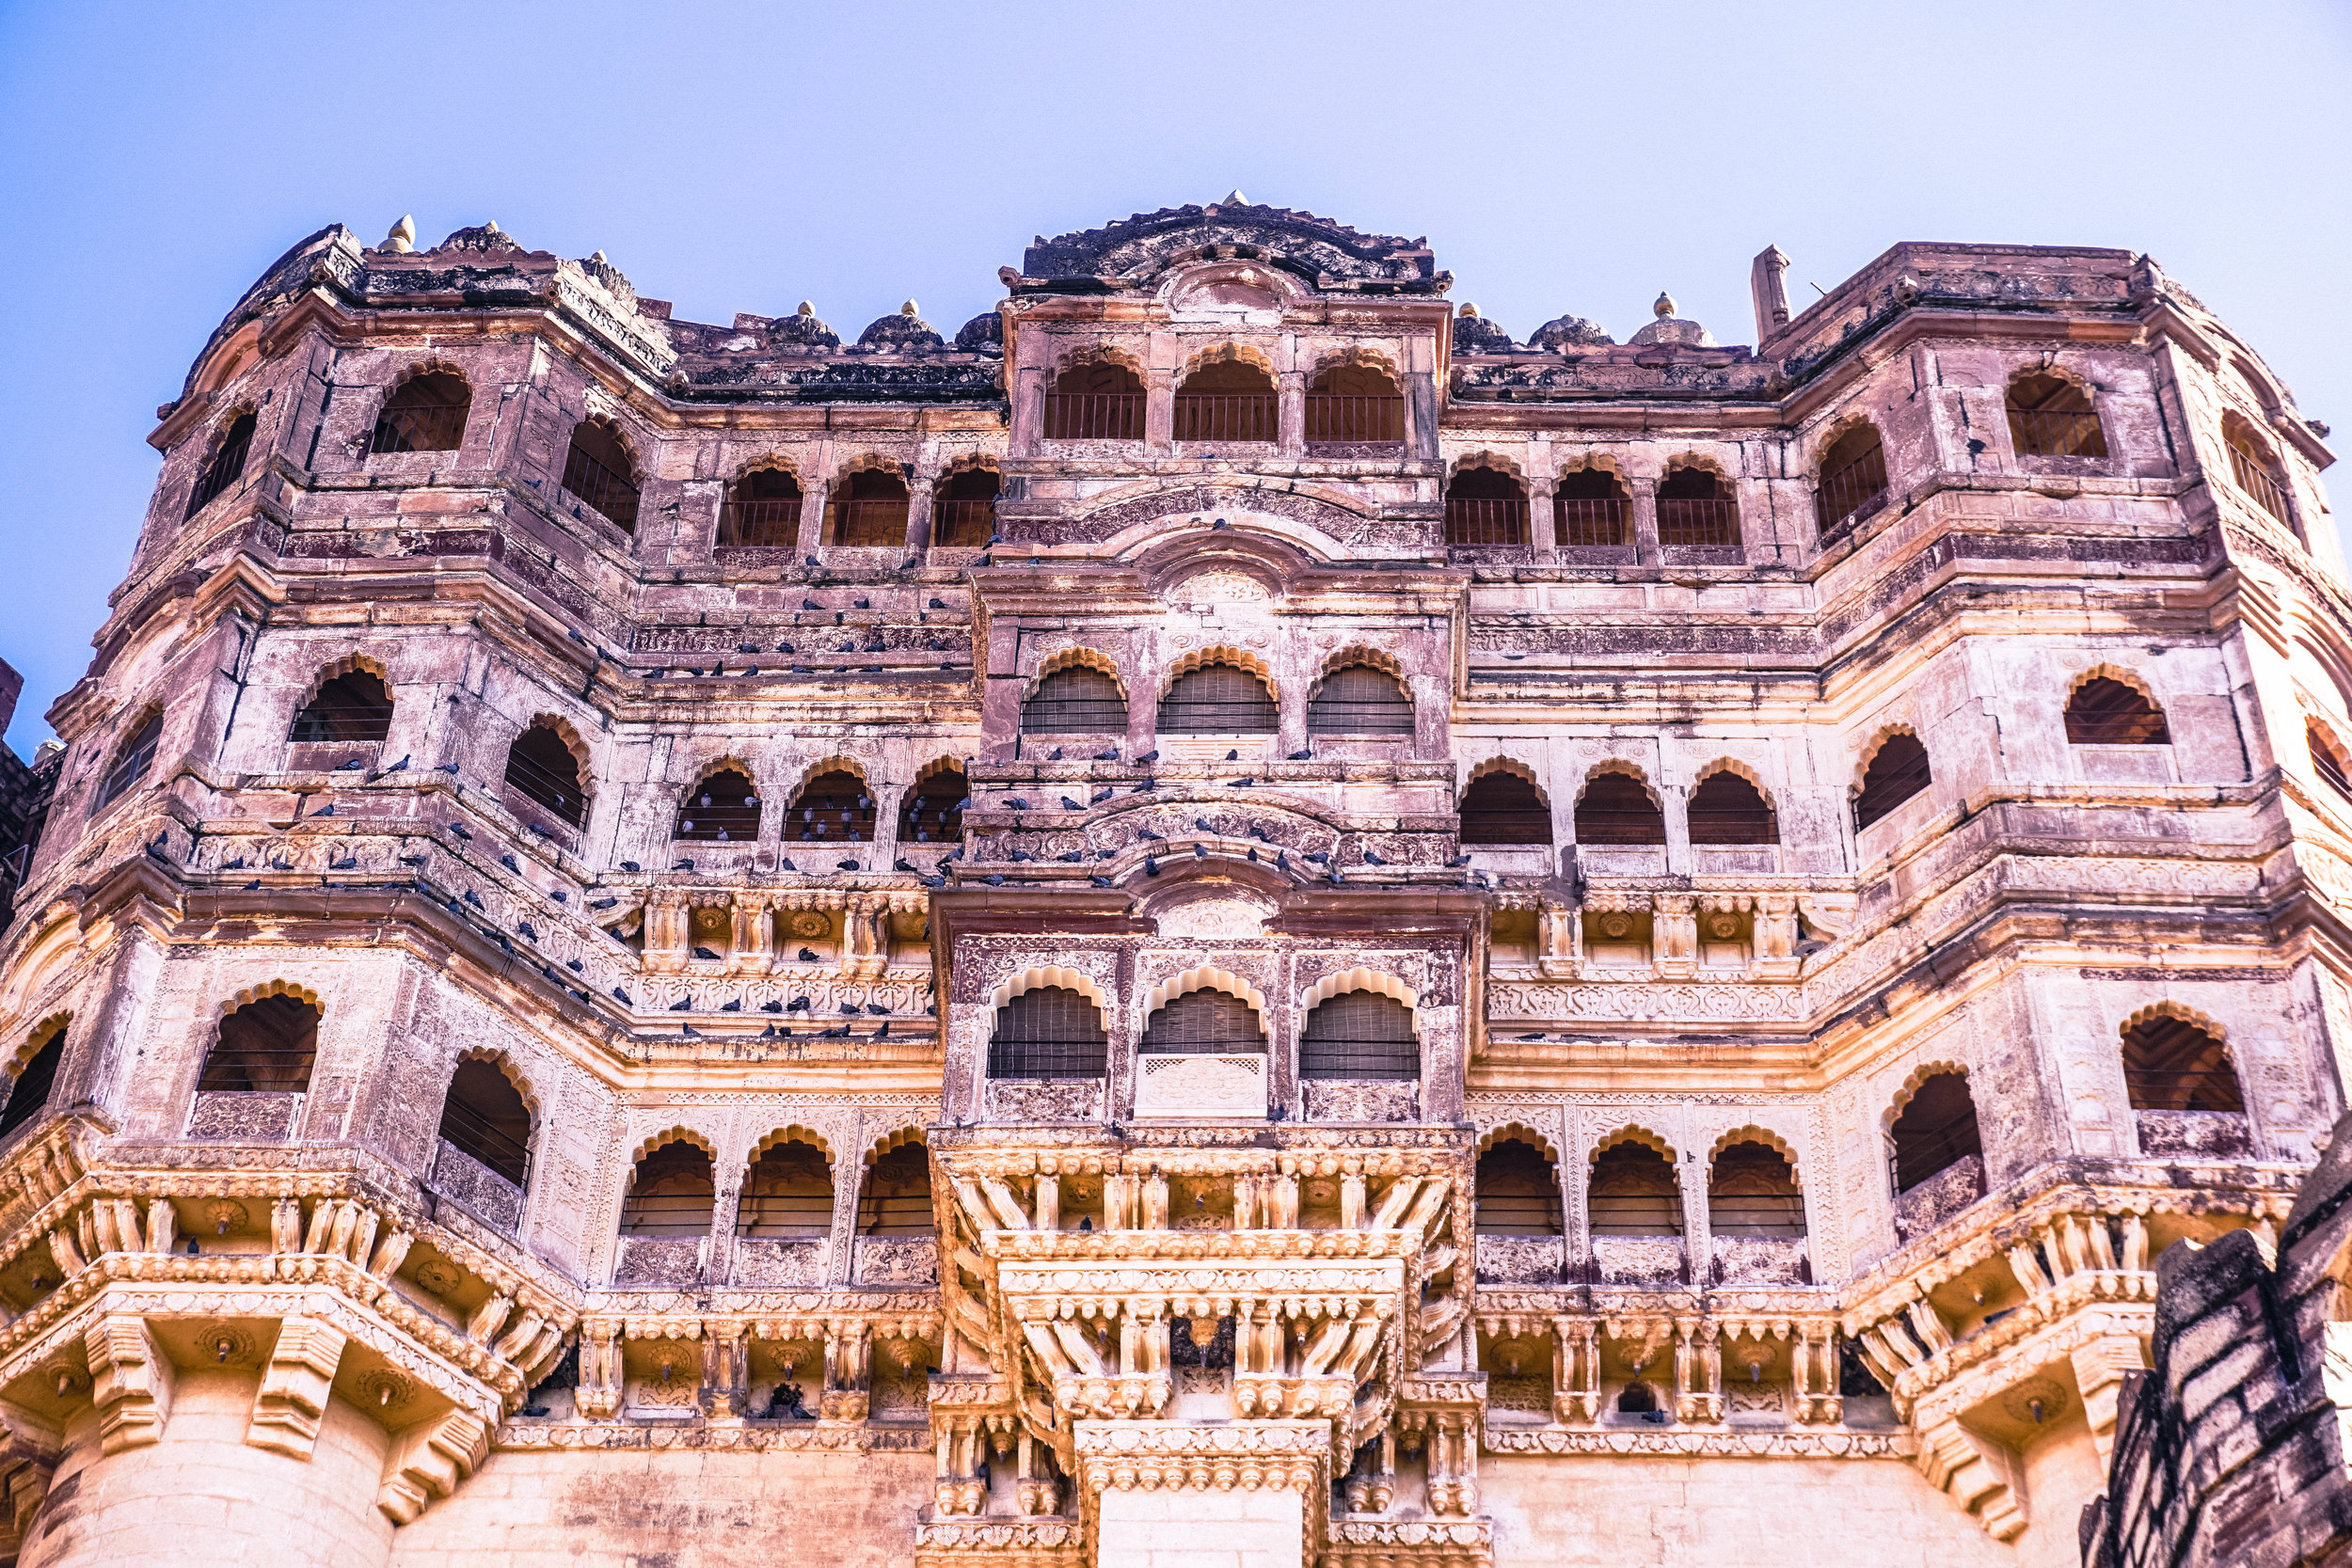 Mehrangarh Fort has such incredible details (photo edited)